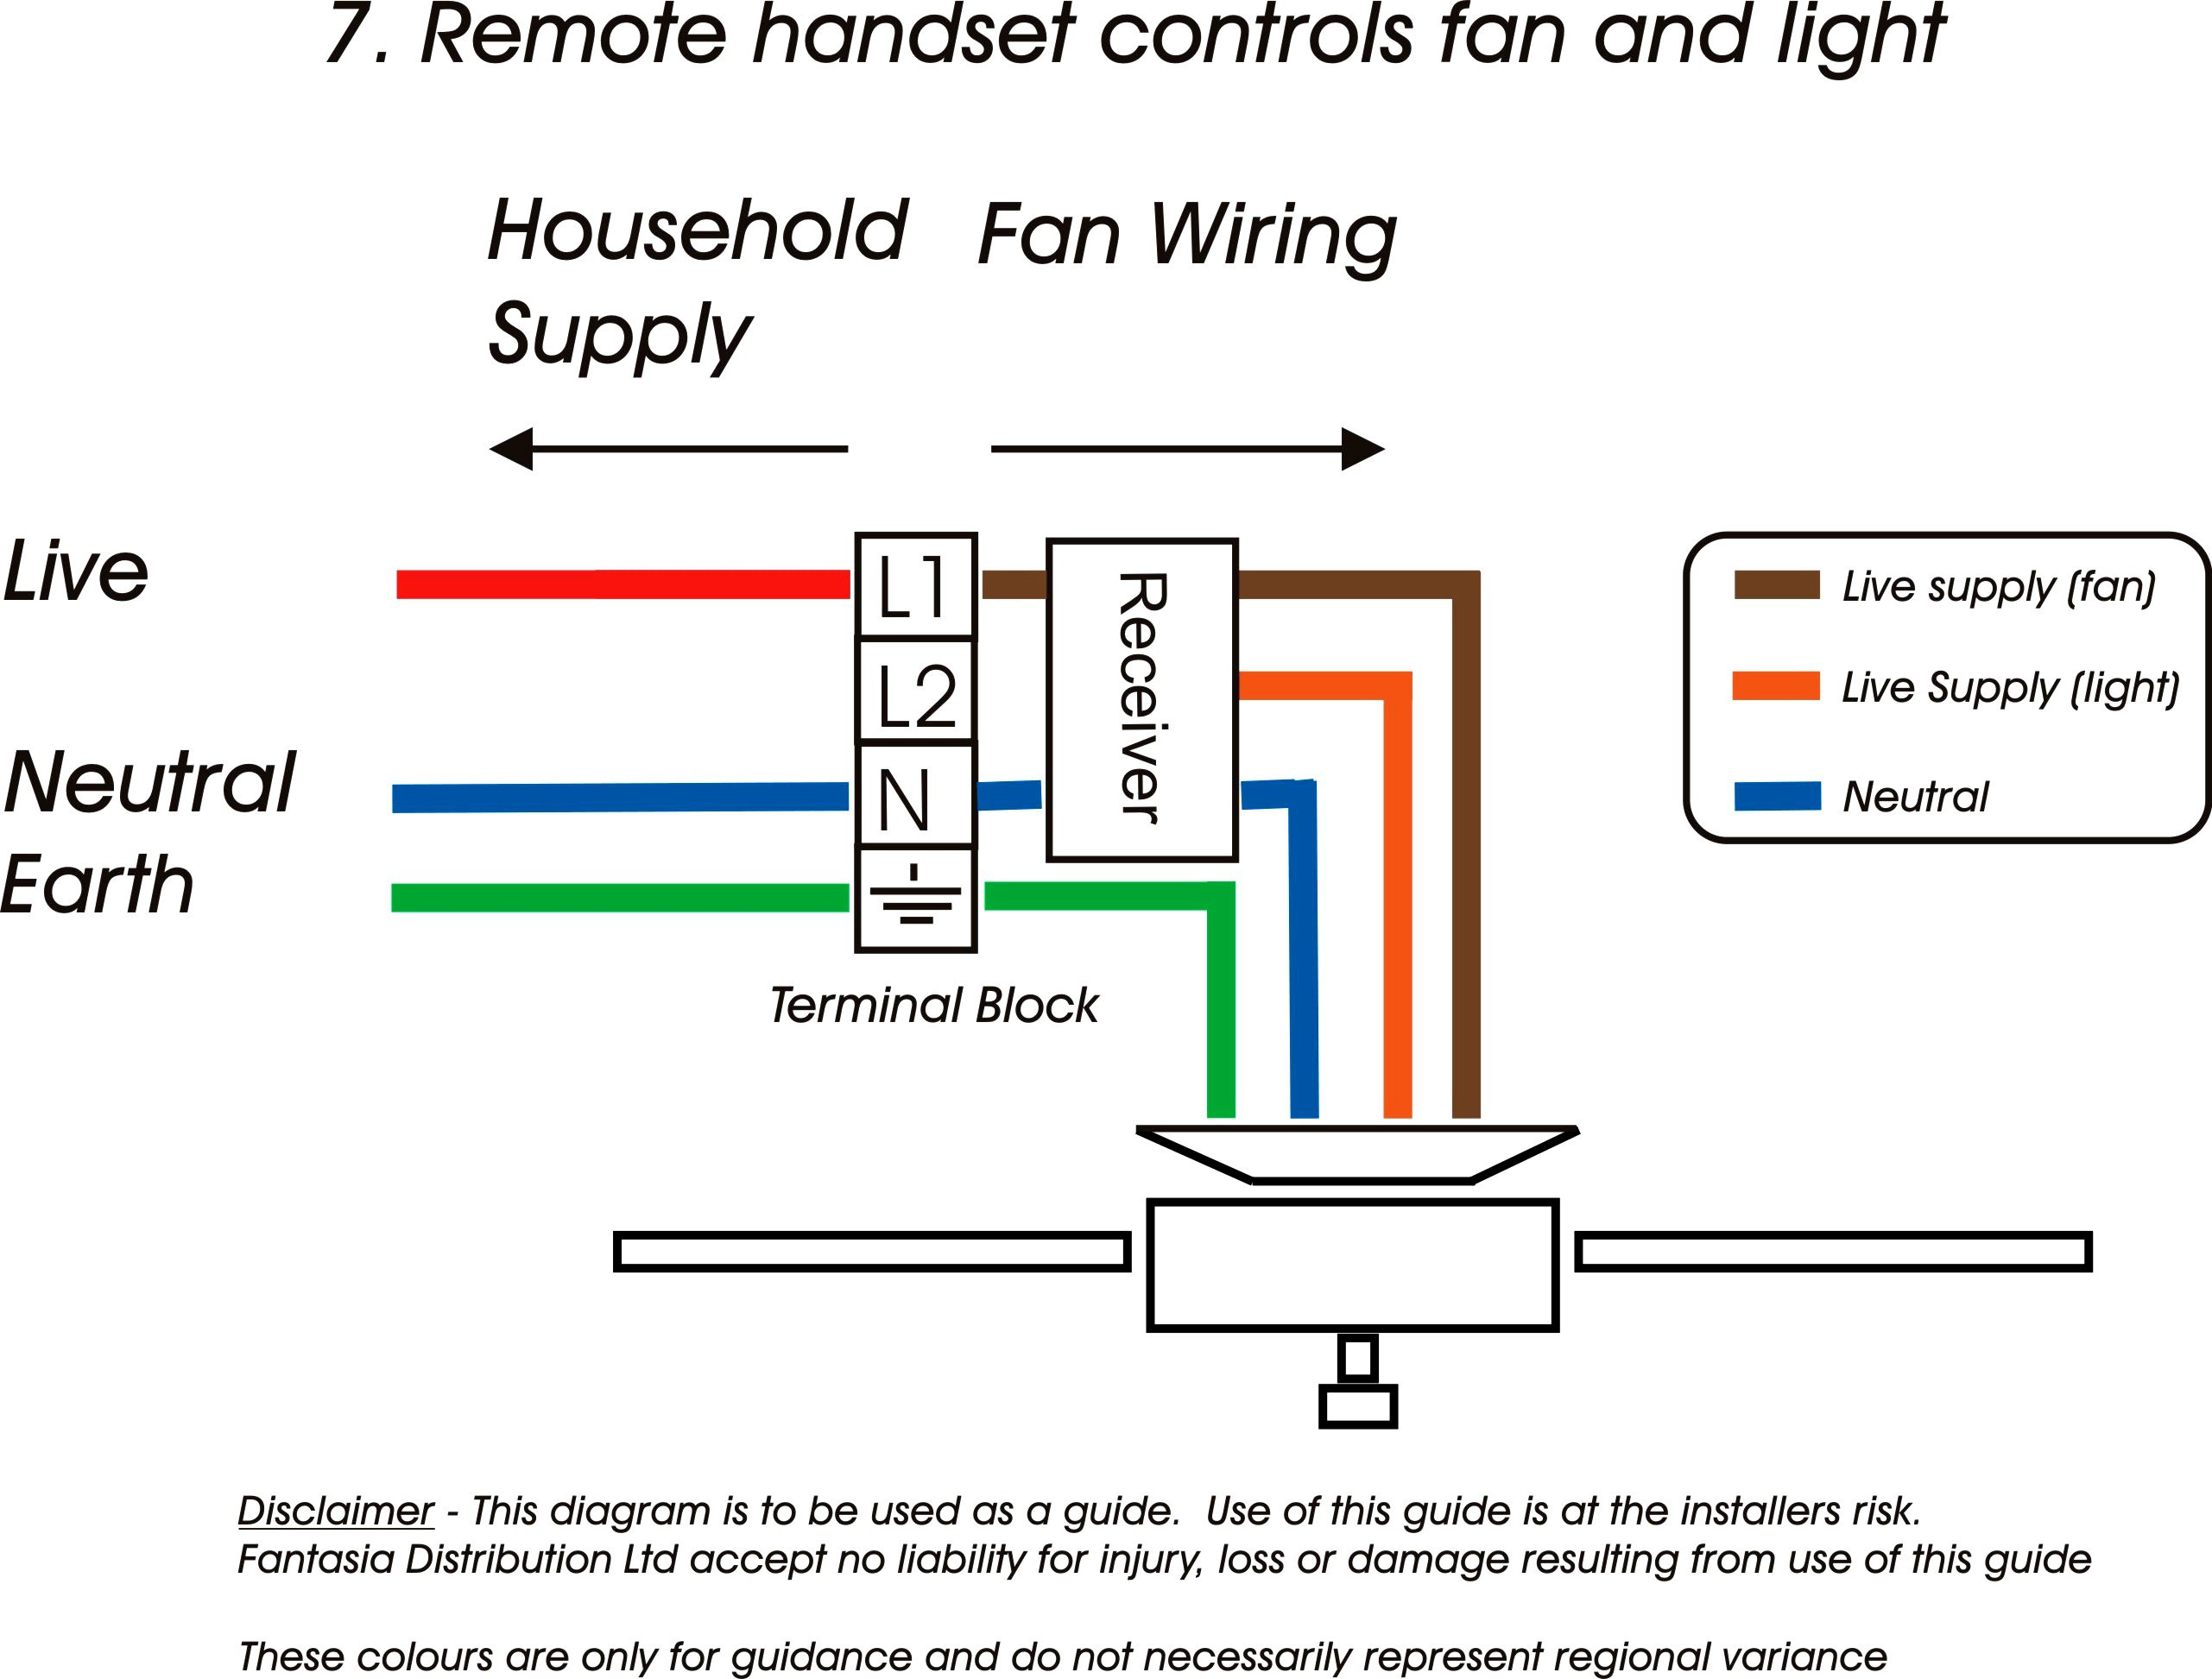 4 wire ceiling fan switch wiring diagram Collection-Fresh 4 Wire Ceiling Fan Switch Wiring Diagram 64 Murray Riding Stunning 5 9-i